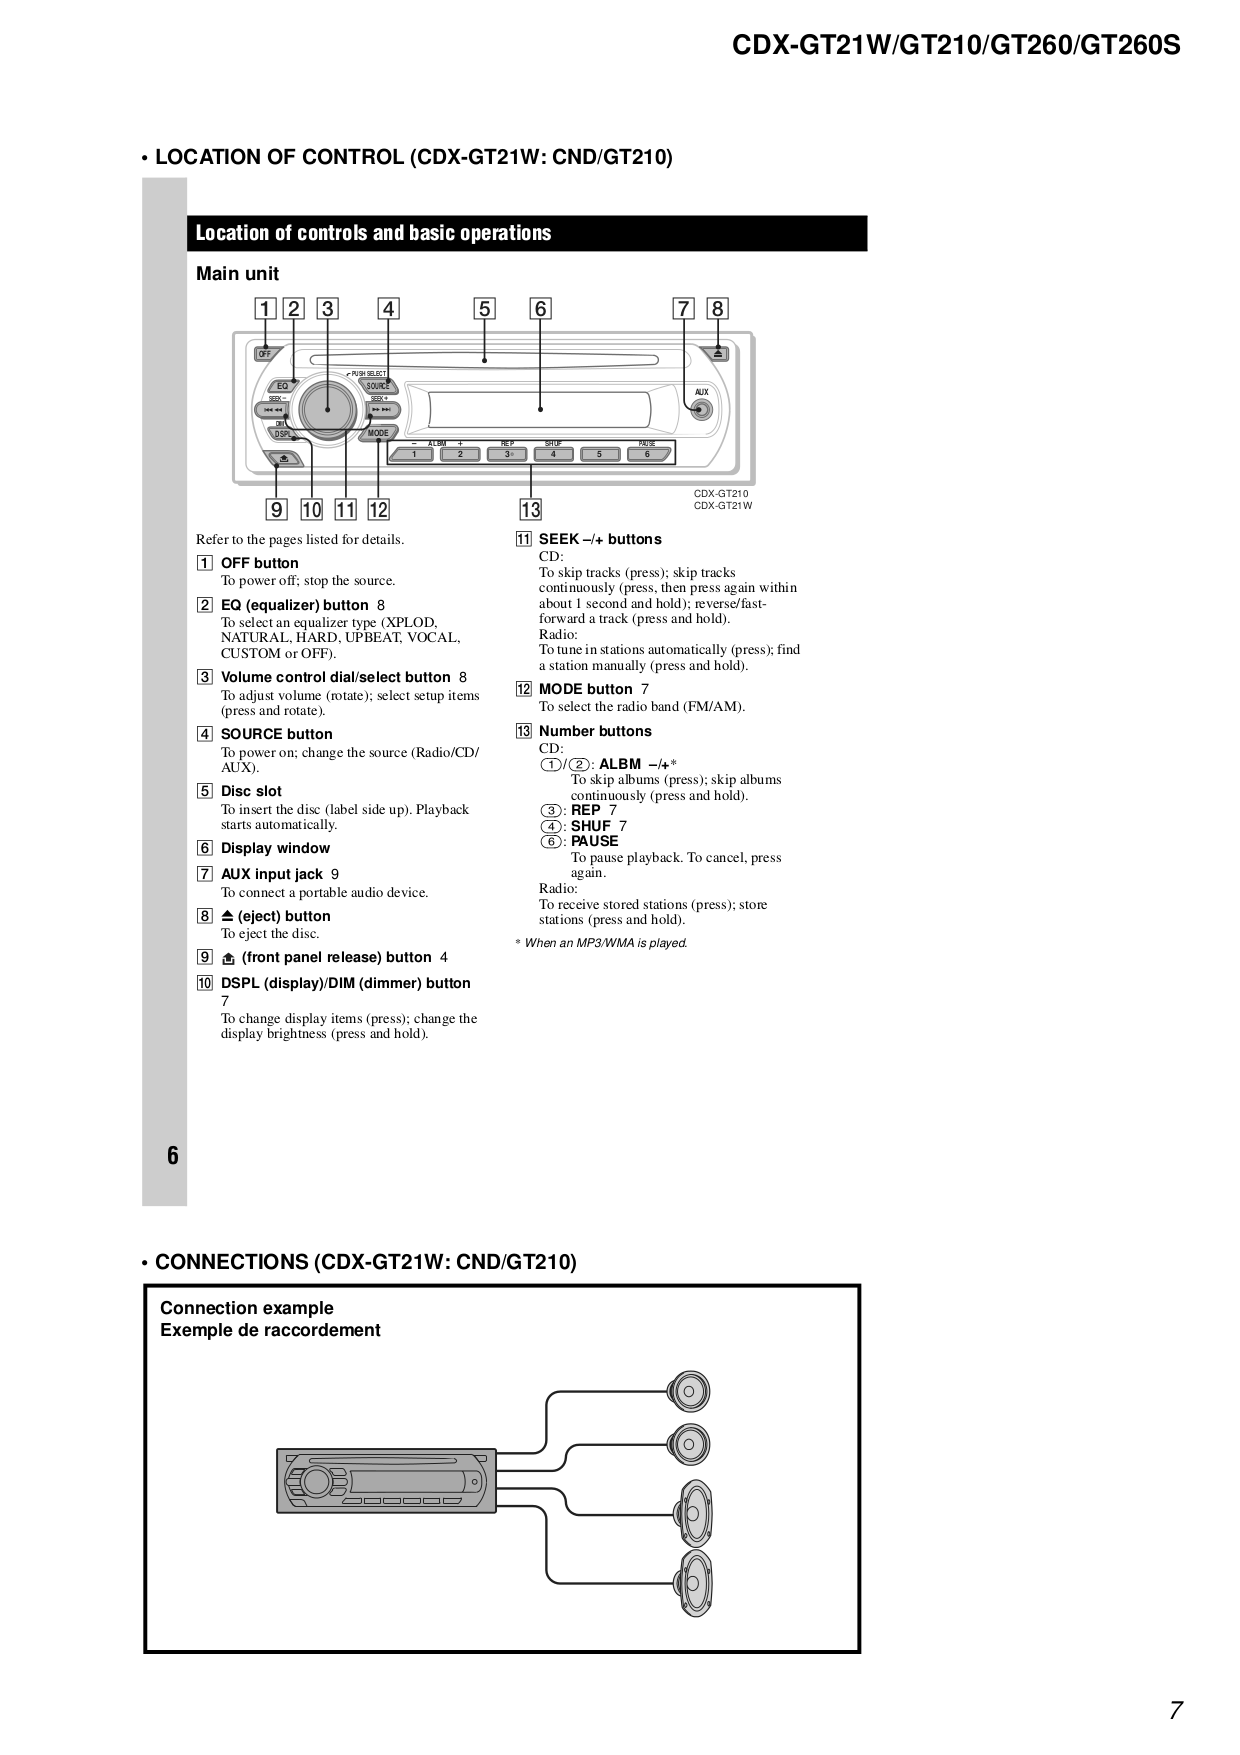 cdx gt21w gt210 gt260.pdf 6?resize=665%2C941 wiring diagram for sony xplod cdx gt210 wiring diagram sony cdx gt210 wiring harness at webbmarketing.co